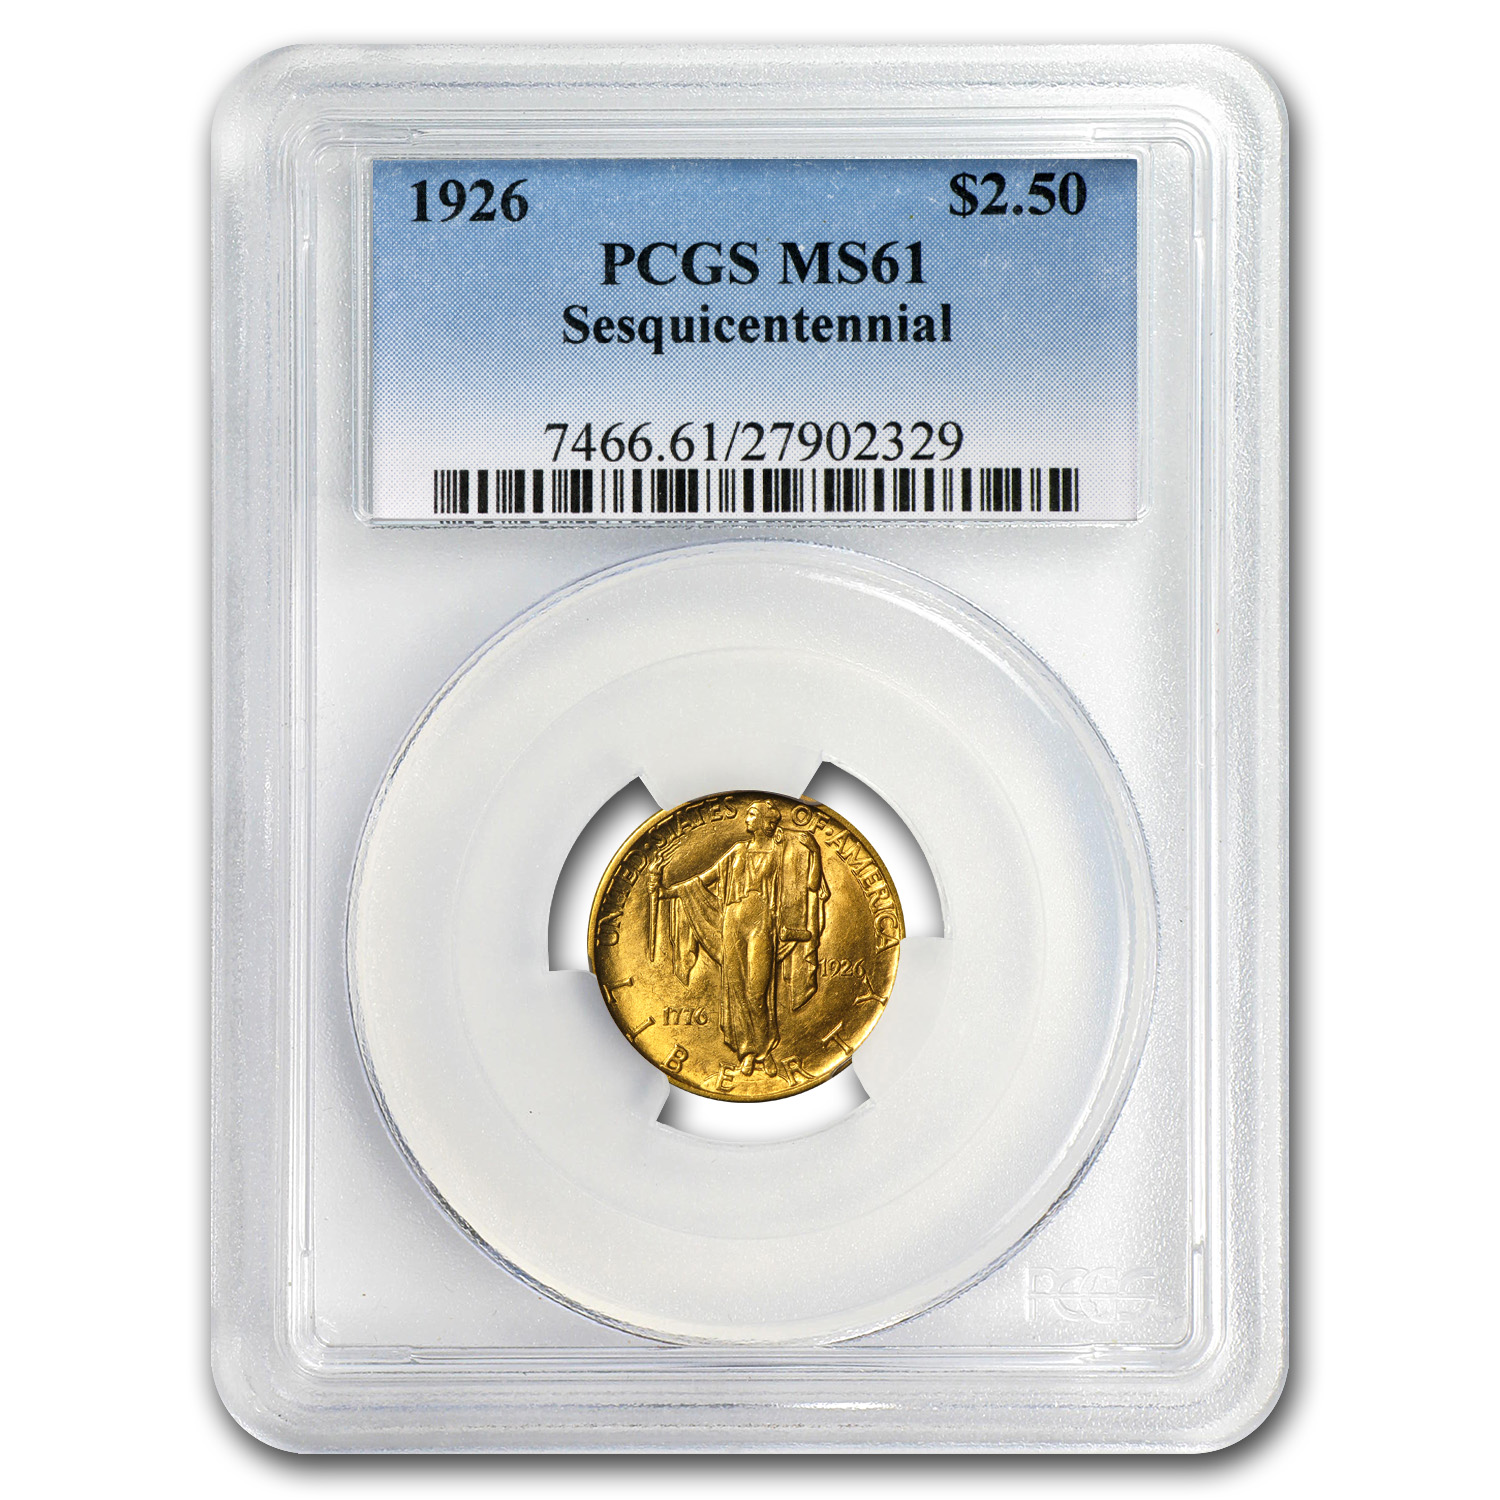 1926 Gold $2.50 America Sesquicentennial MS-61 PCGS